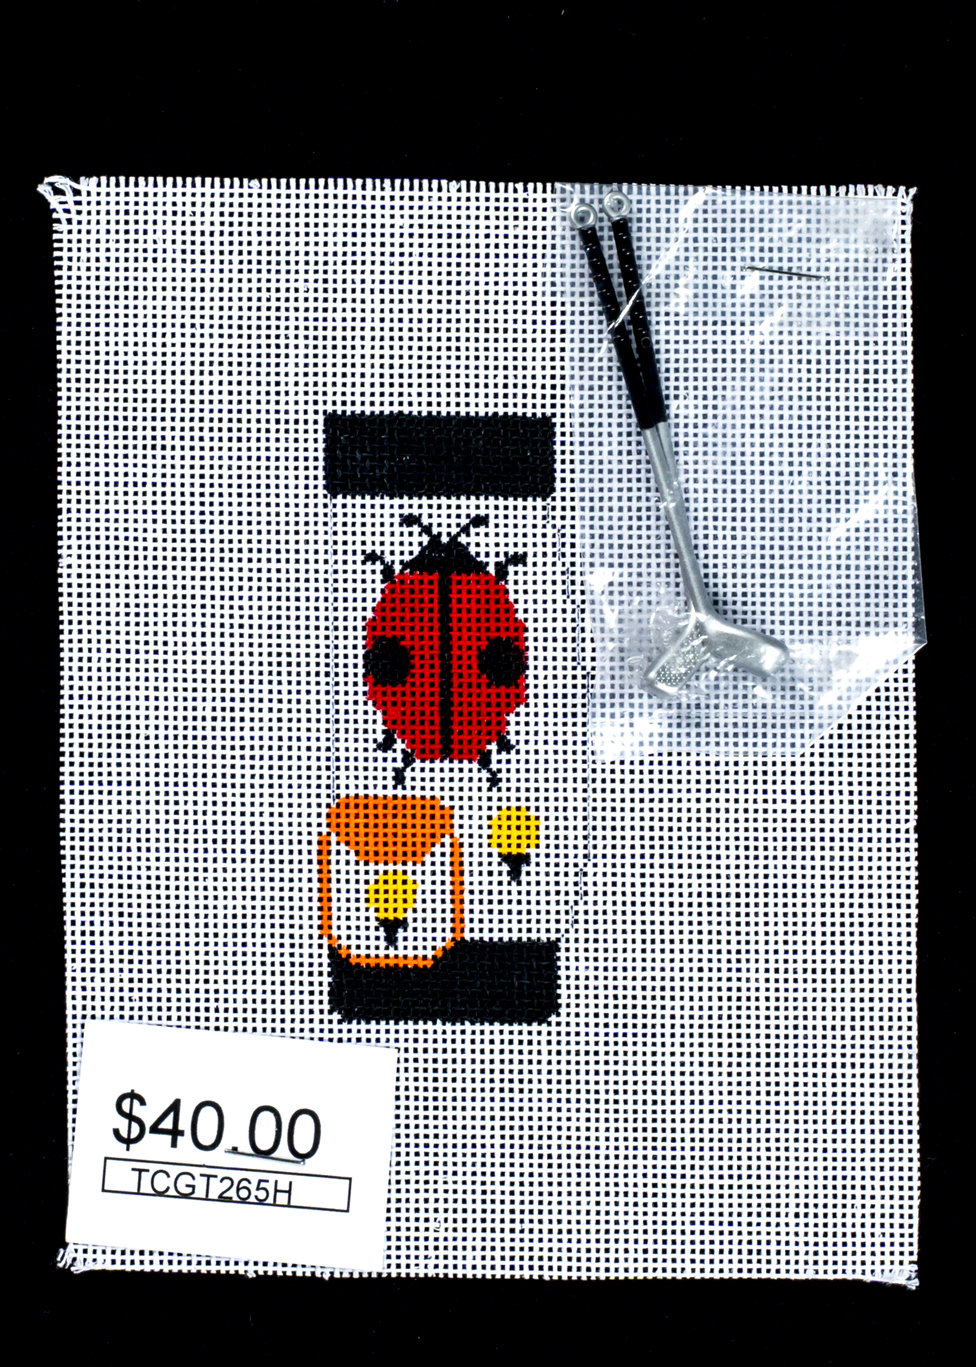 The Collection,Ladybug Golf Bag, with 2 Clubs, TCGT265